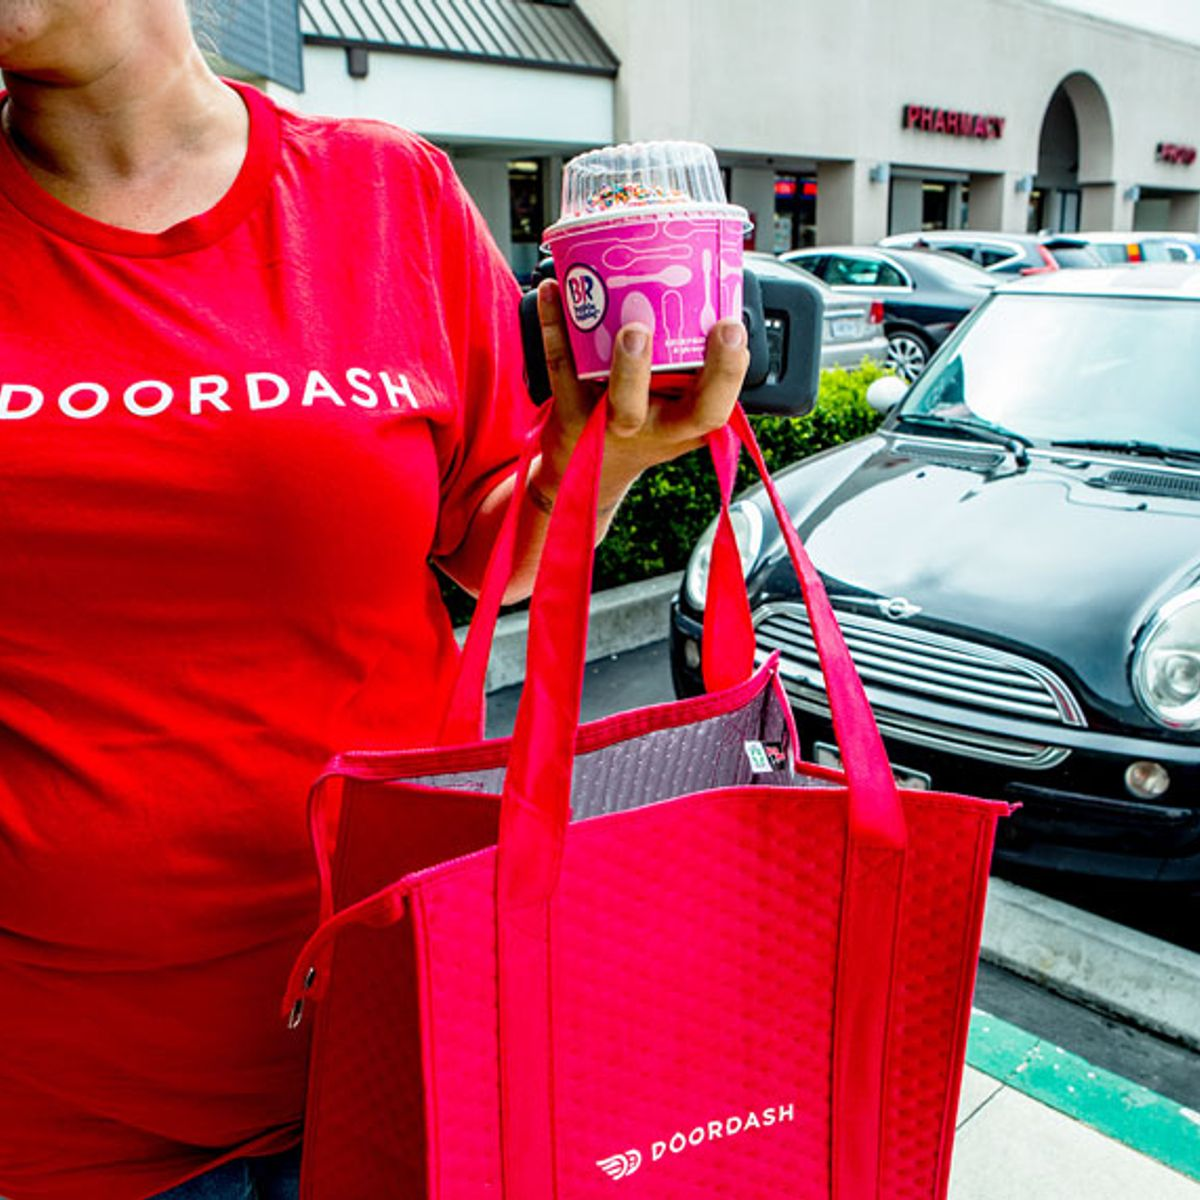 DoorDash drivers make an average of $1.45 an hour, analysis finds